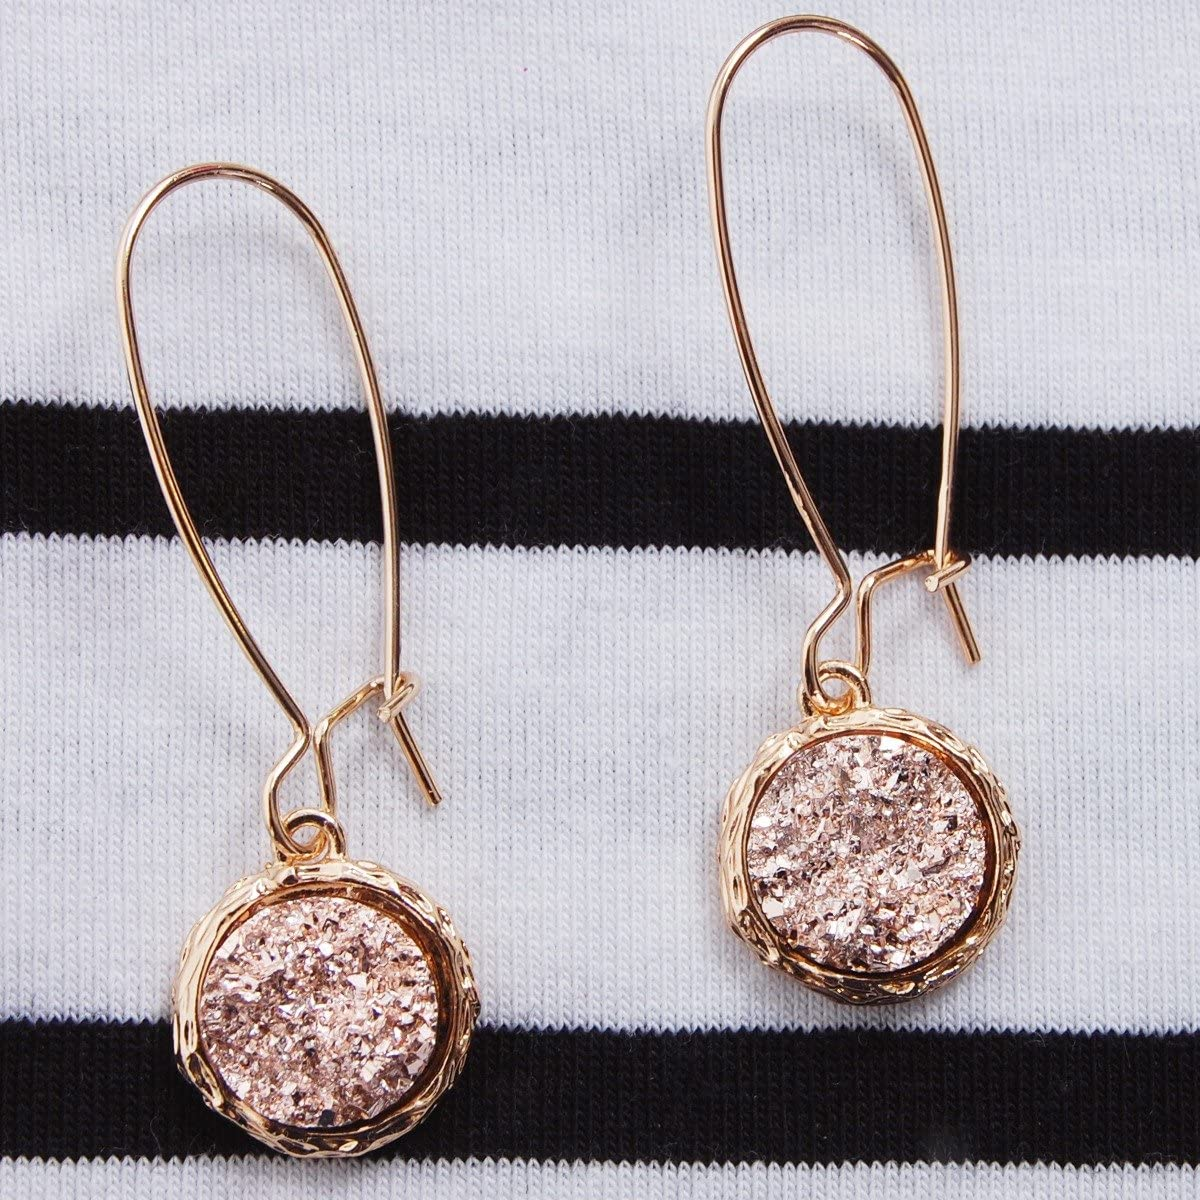 Humble Chic Simulated Druzy Threaders - Boho Glitter Upside-Down Long Hoop Dangle Drop Earrings for Women - Bohemian Created Geode Stone Sparkly Pendants